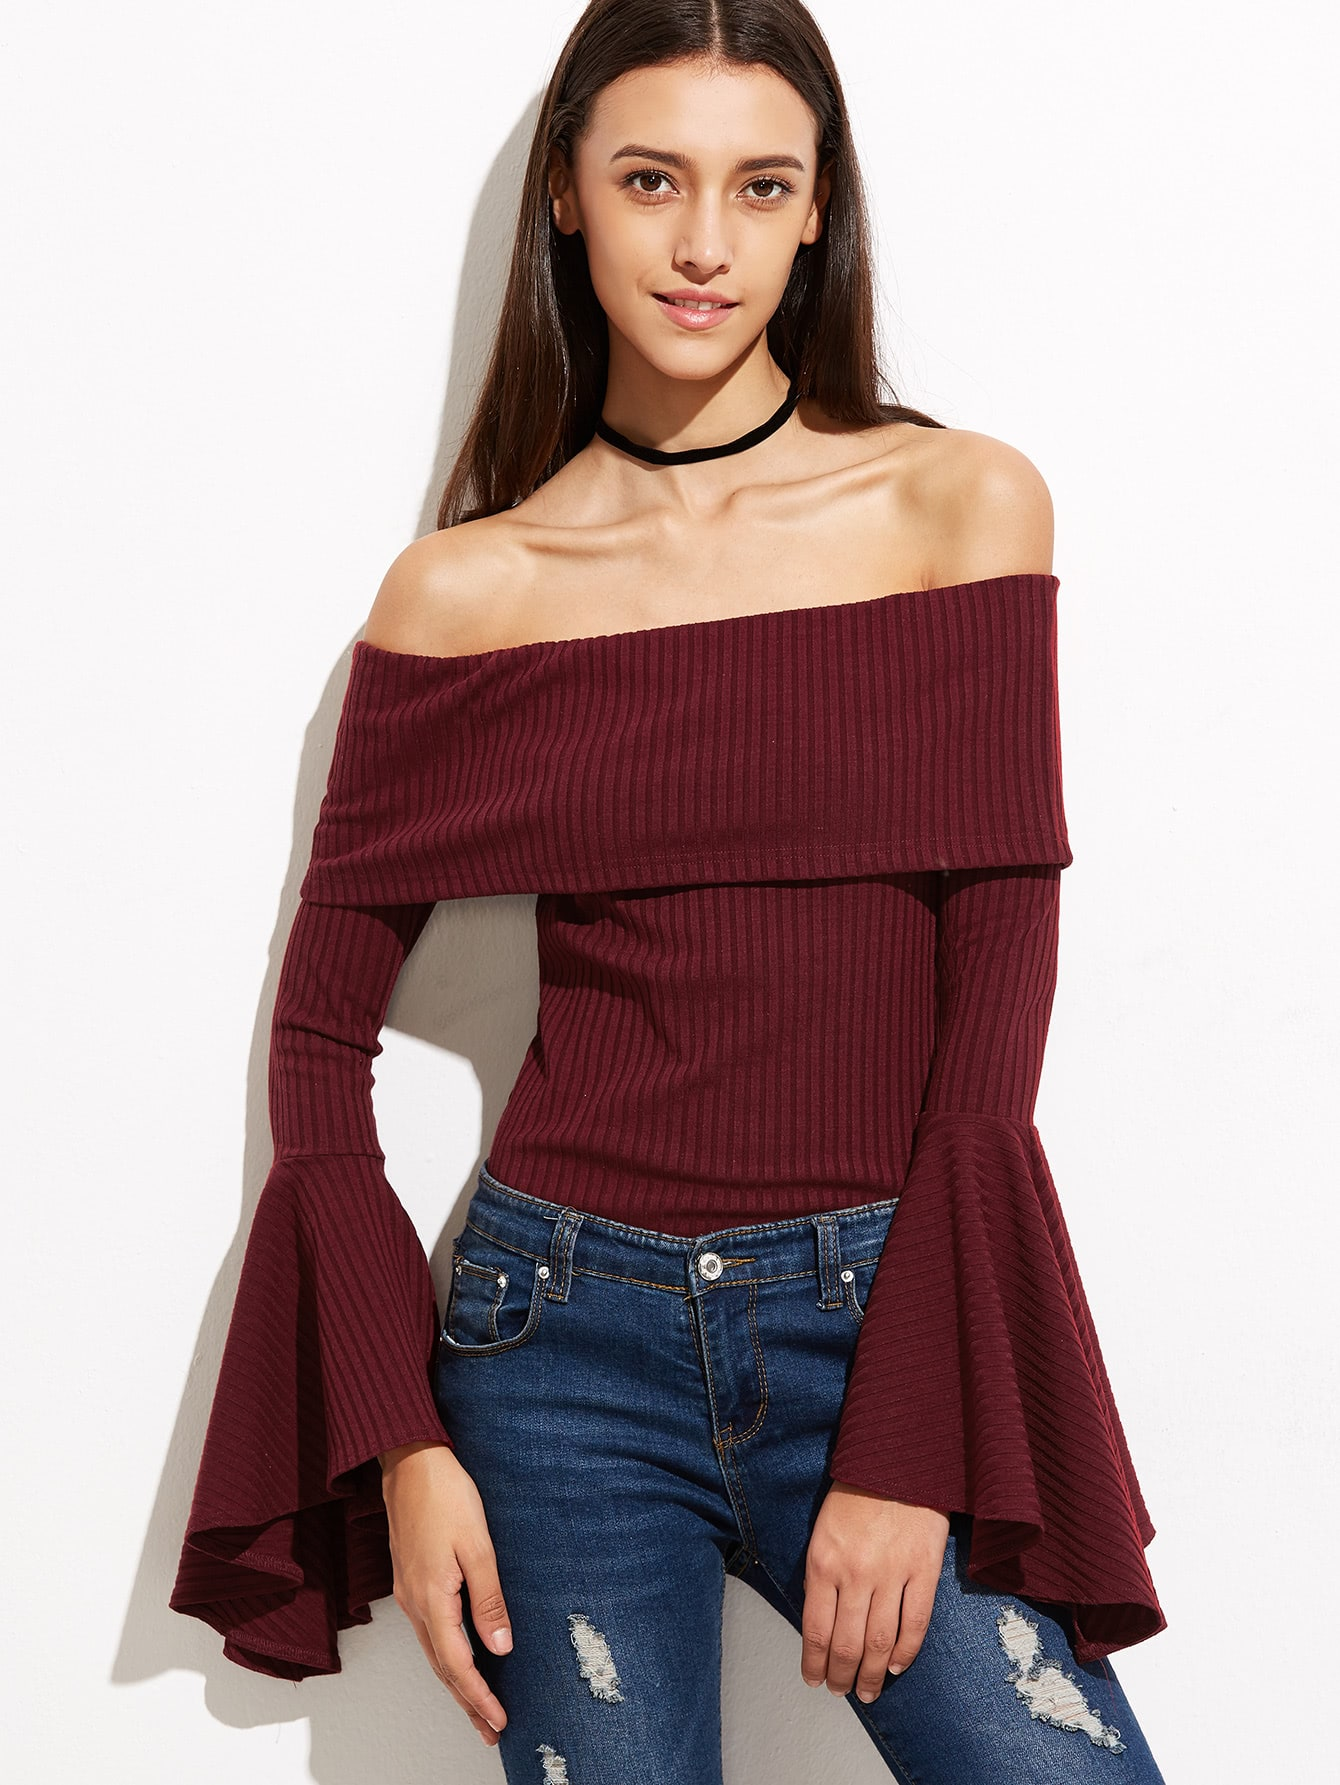 Burgundy Foldover Off The Shoulder Bell Sleeve Ribbed T-shirt tee160926703